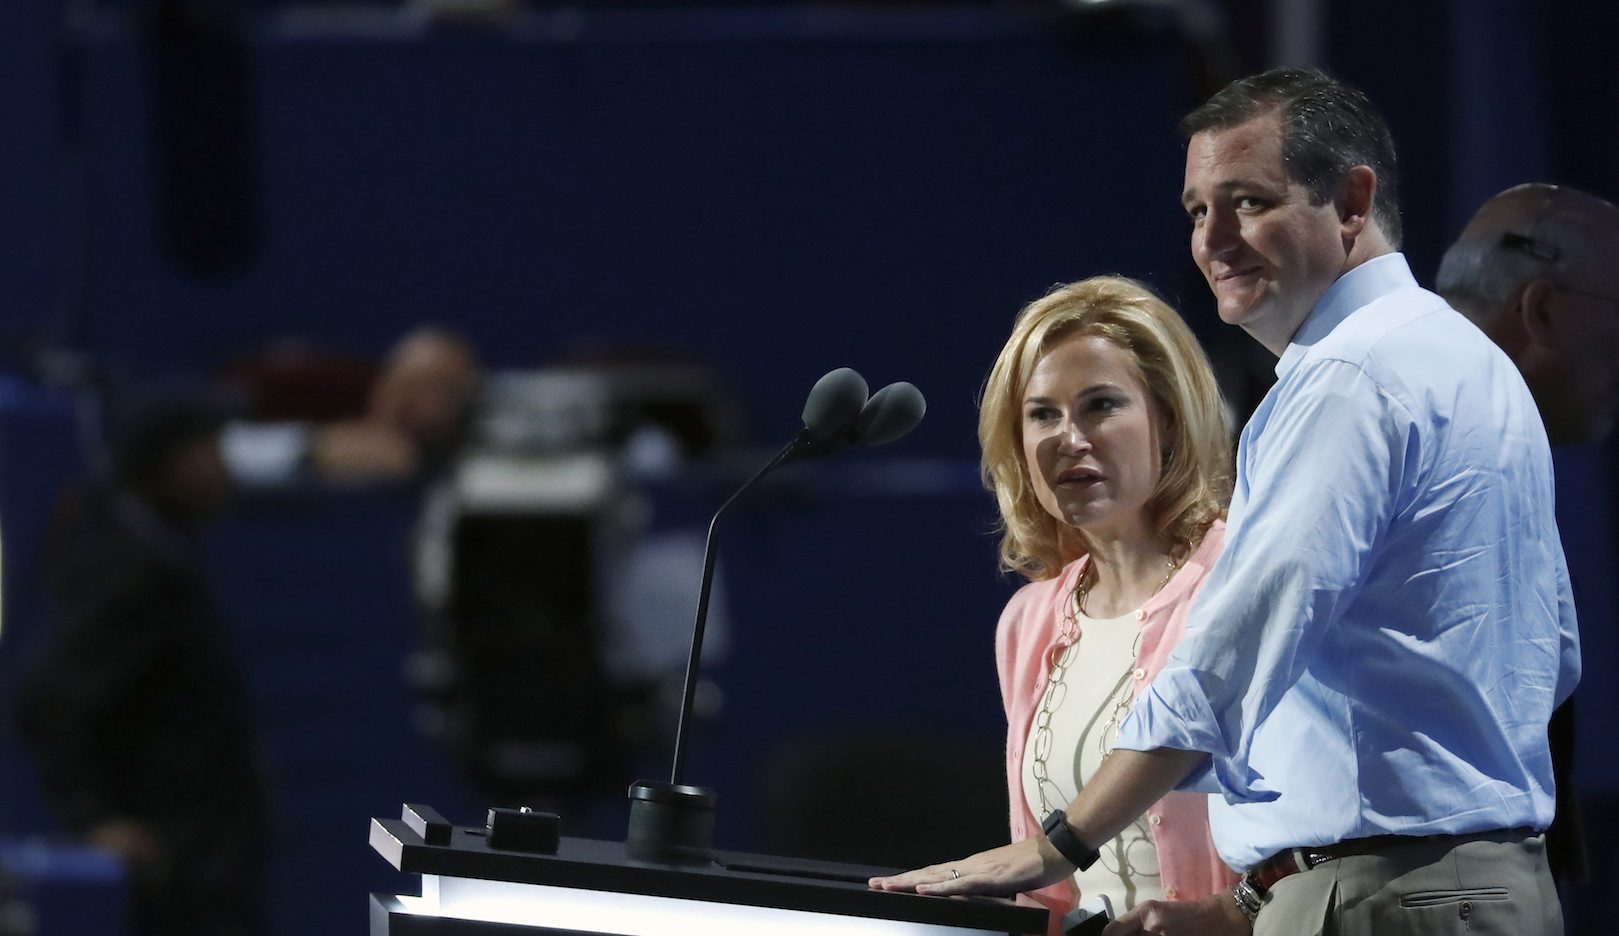 Sen. Ted Cruz, R-Tex., and wife Heidi look over the convention floor during a sound check before the third day of the Republican National Convention in Cleveland, Wednesday, July 20, 2016. (AP Photo/Paul Sancya)